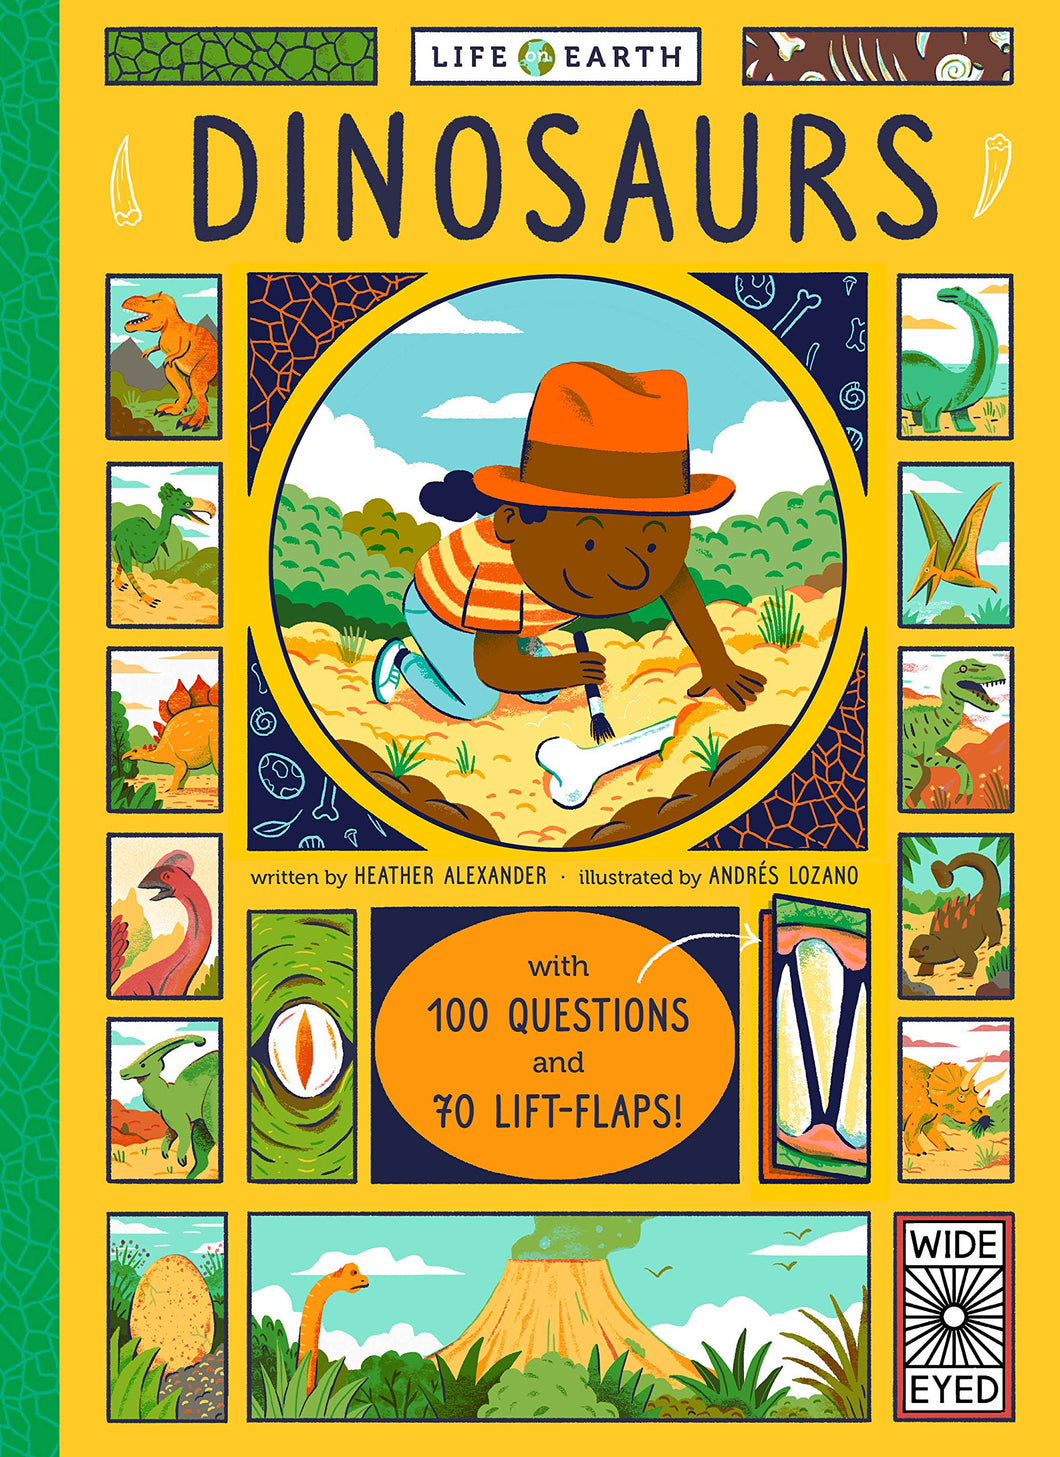 Life on Earth: Dinosaurs - Me Books Asia Store